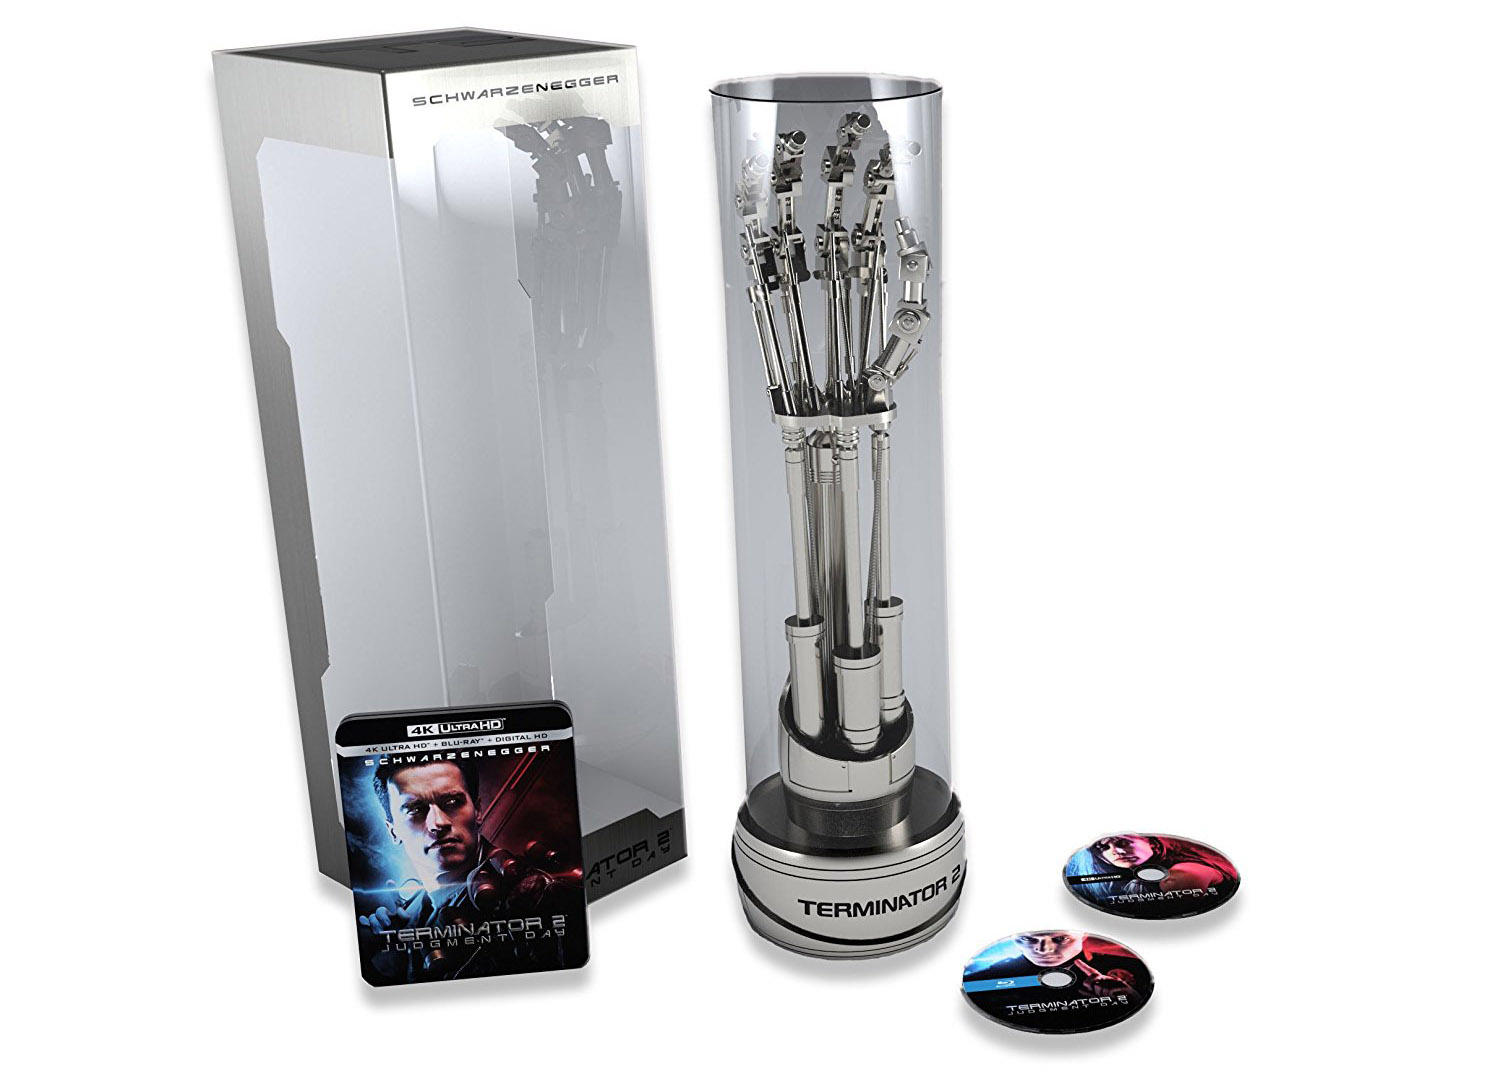 Terminator 2- Judgment Day Endoarm 4K Ultra HD Blu-ray